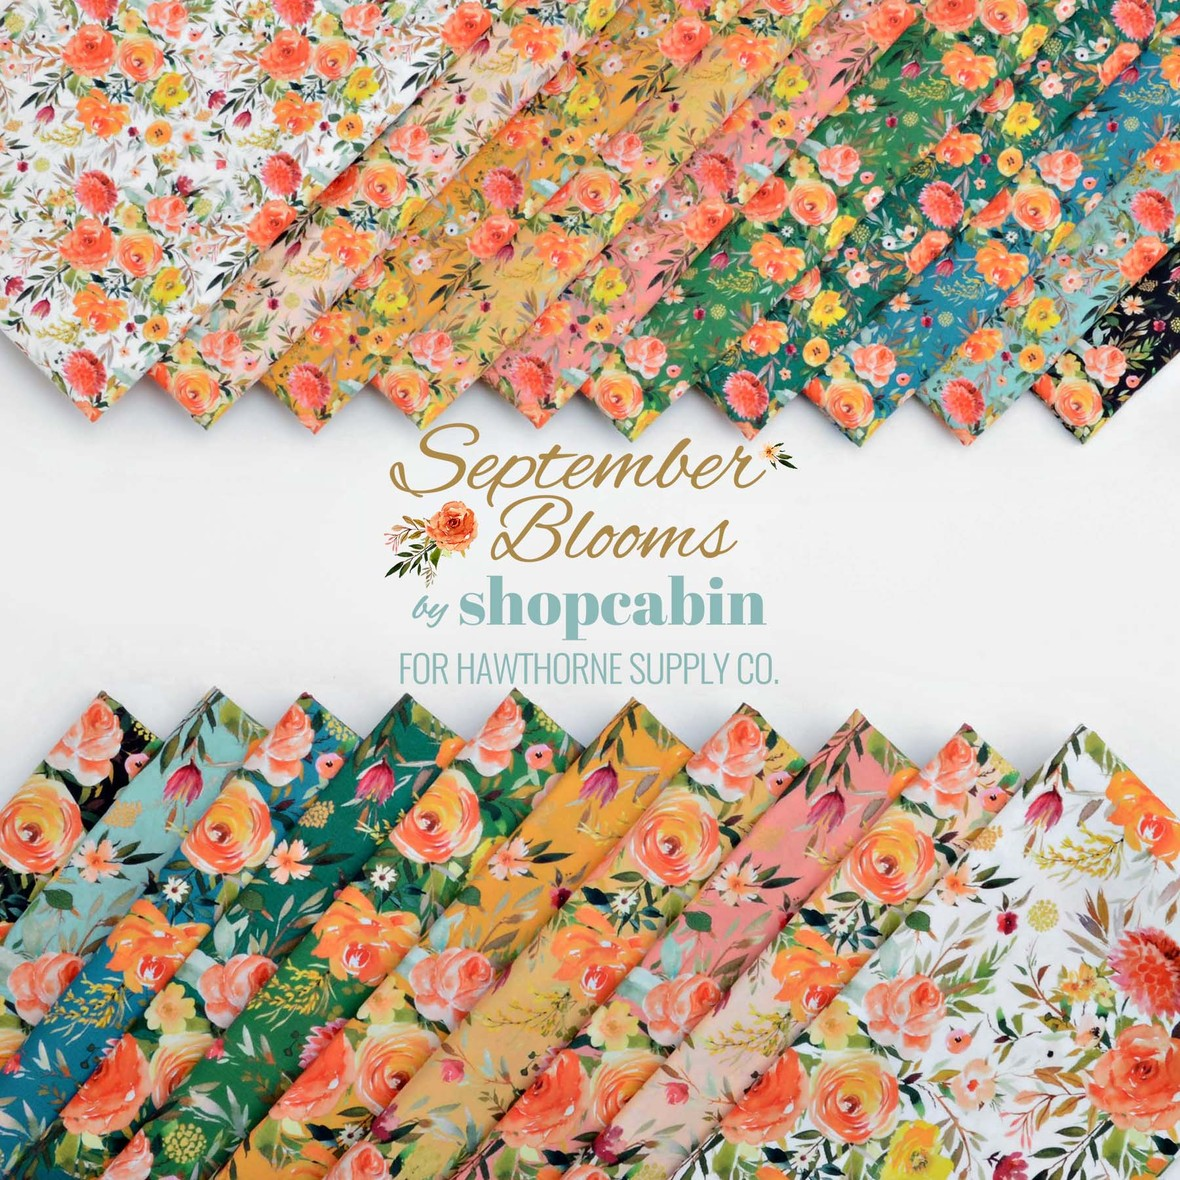 Septemer Blooms Florals Poster Shopcabin Fabric for Hawthorne Supply Co